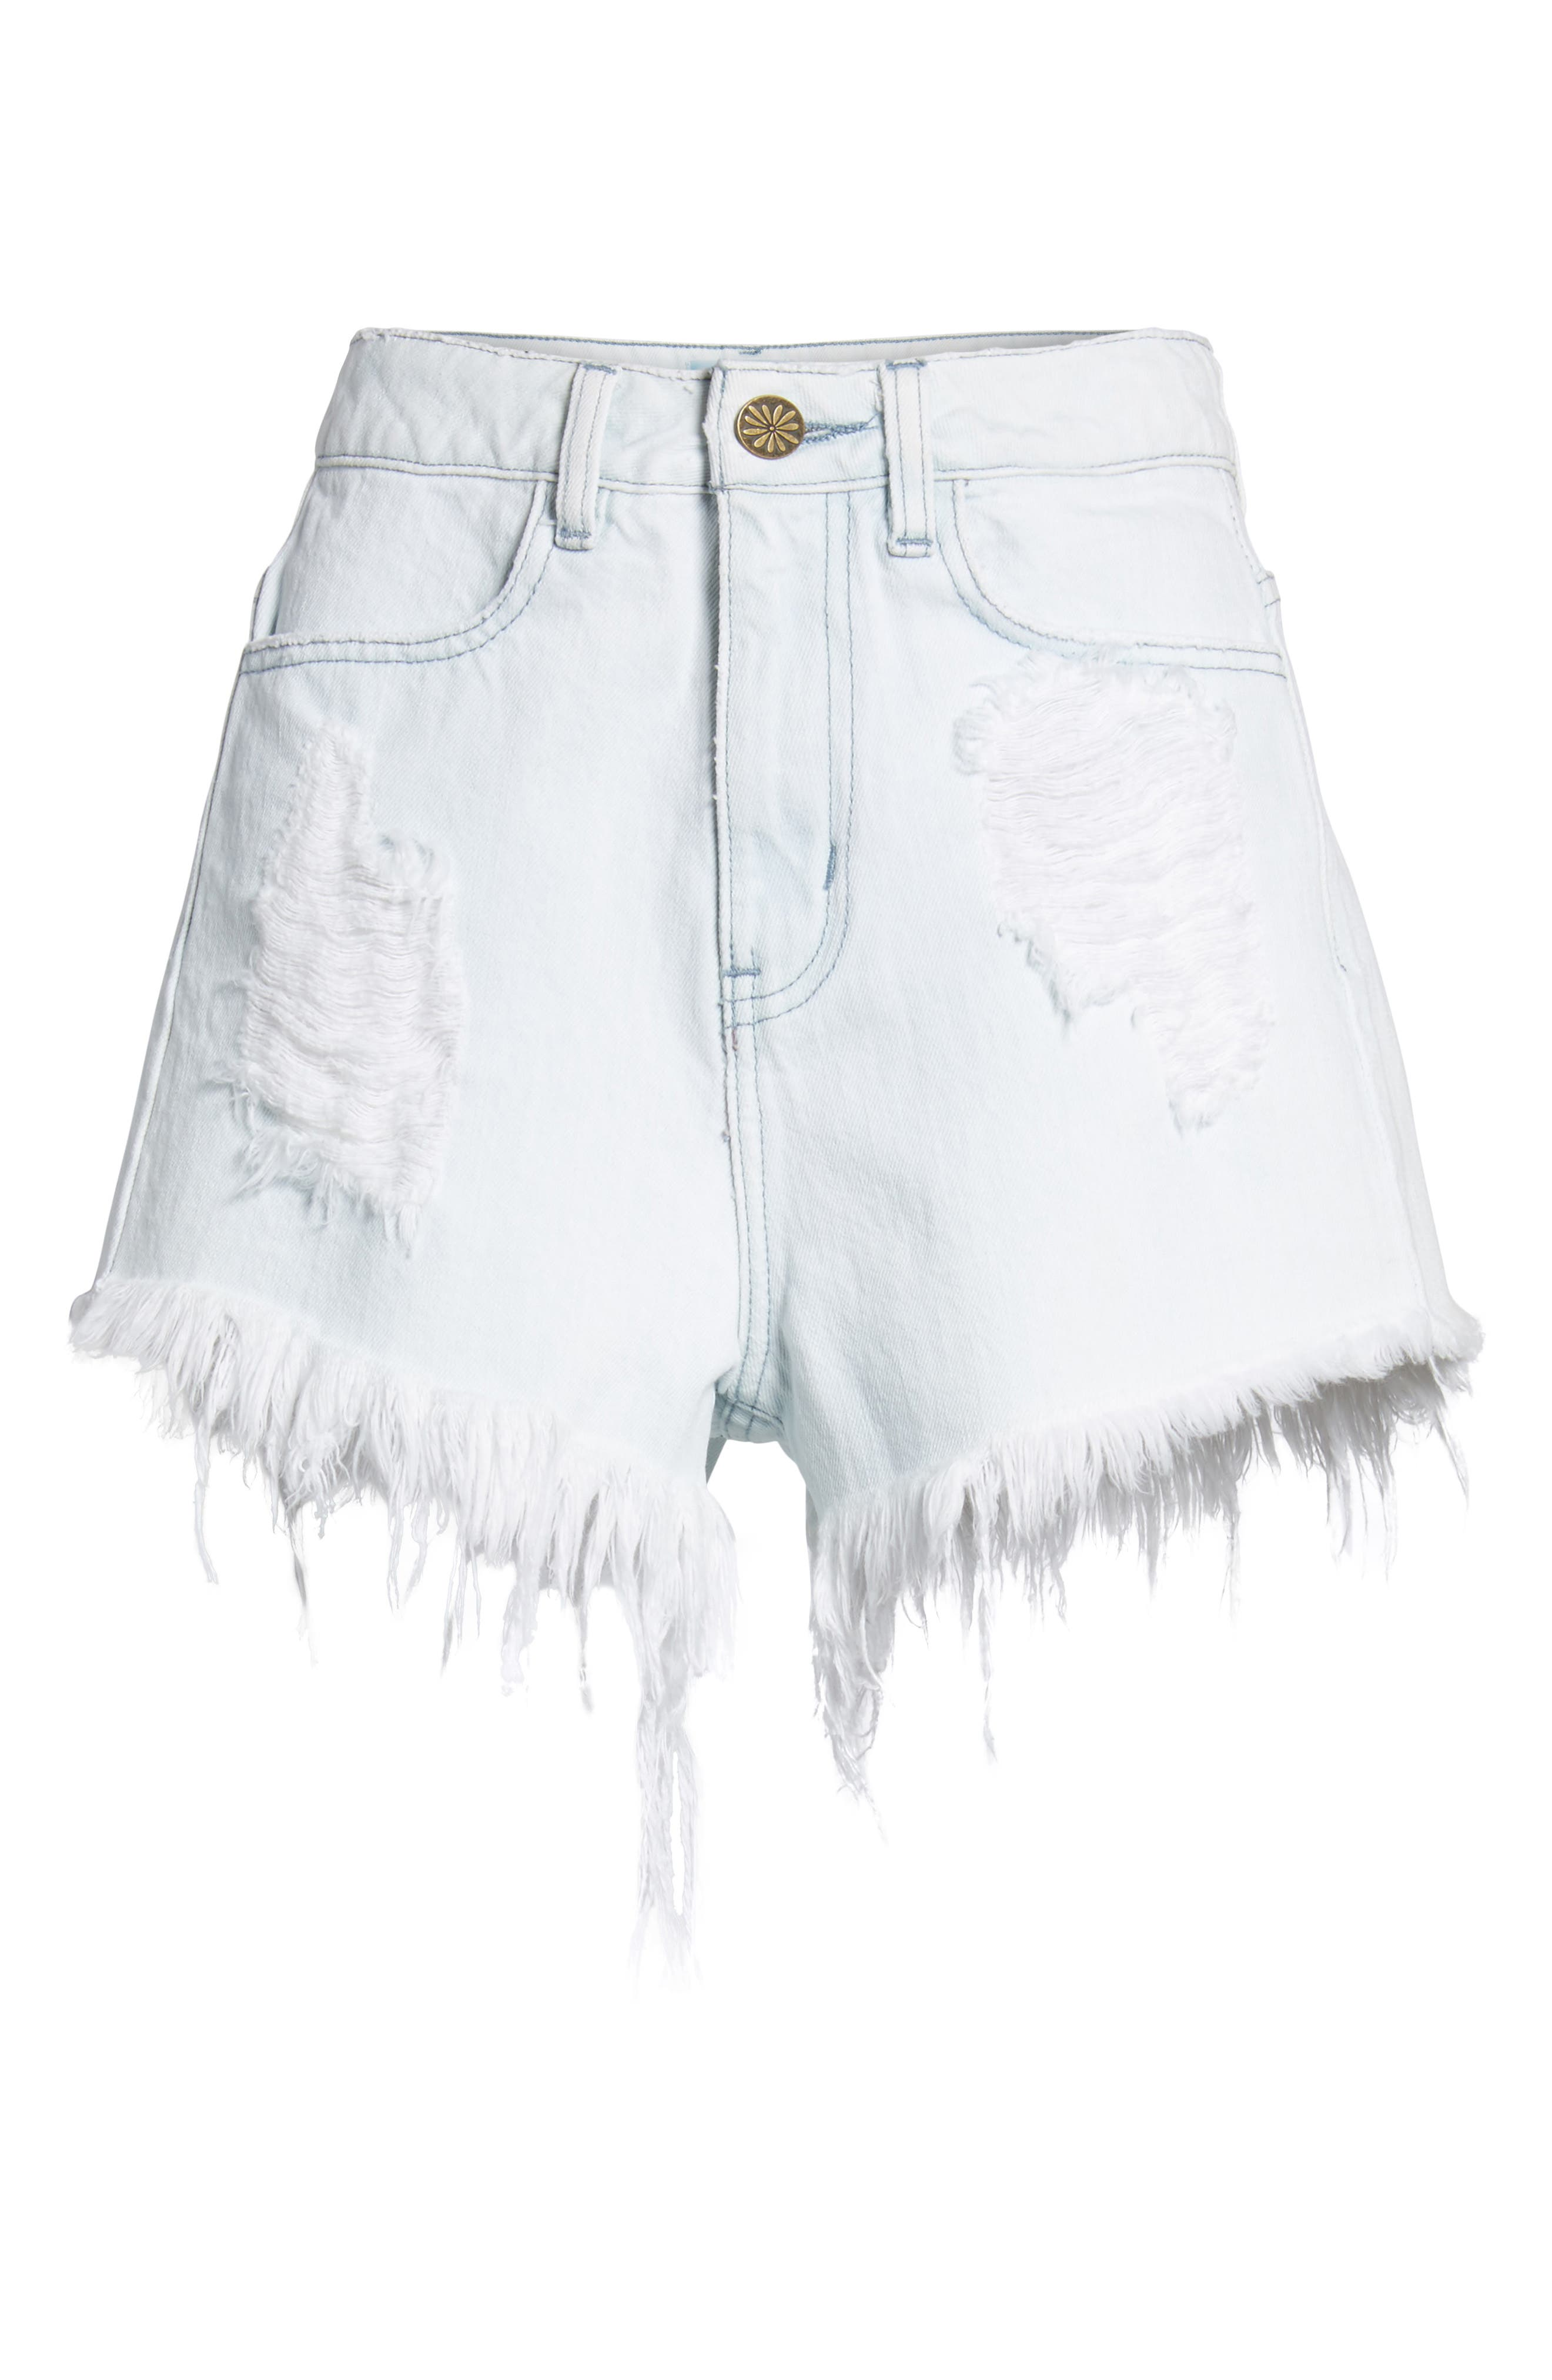 Wyoming High Waist Cutoff Denim Shorts,                             Alternate thumbnail 6, color,                             Whitewater